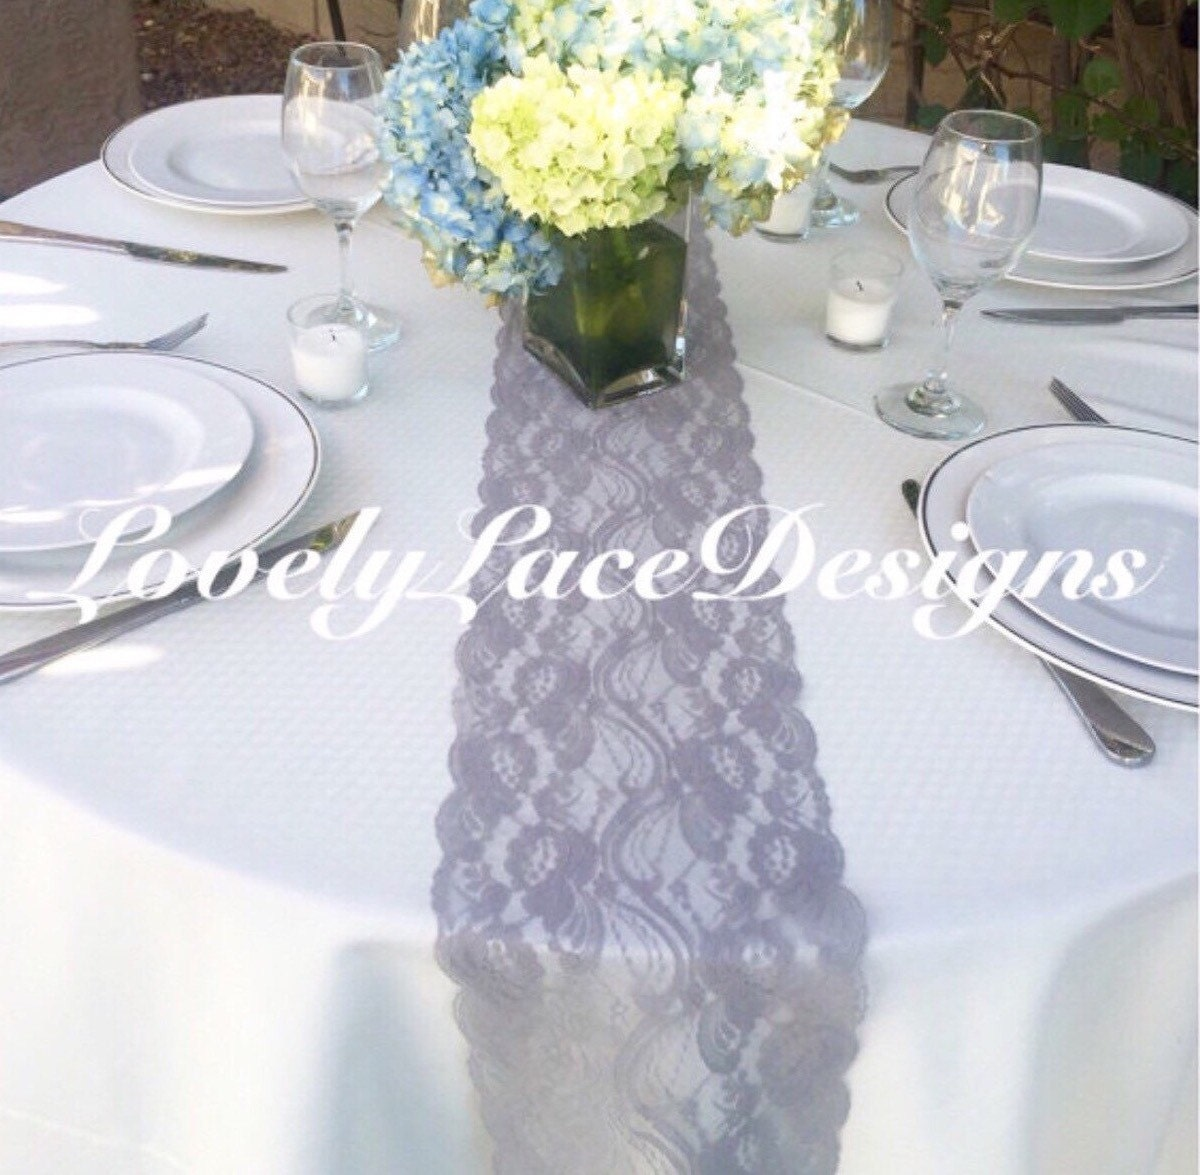 GRAY/SILVER Weddings! 40ft Lace Table Runner, 7wide/Overlay/Wedding ...